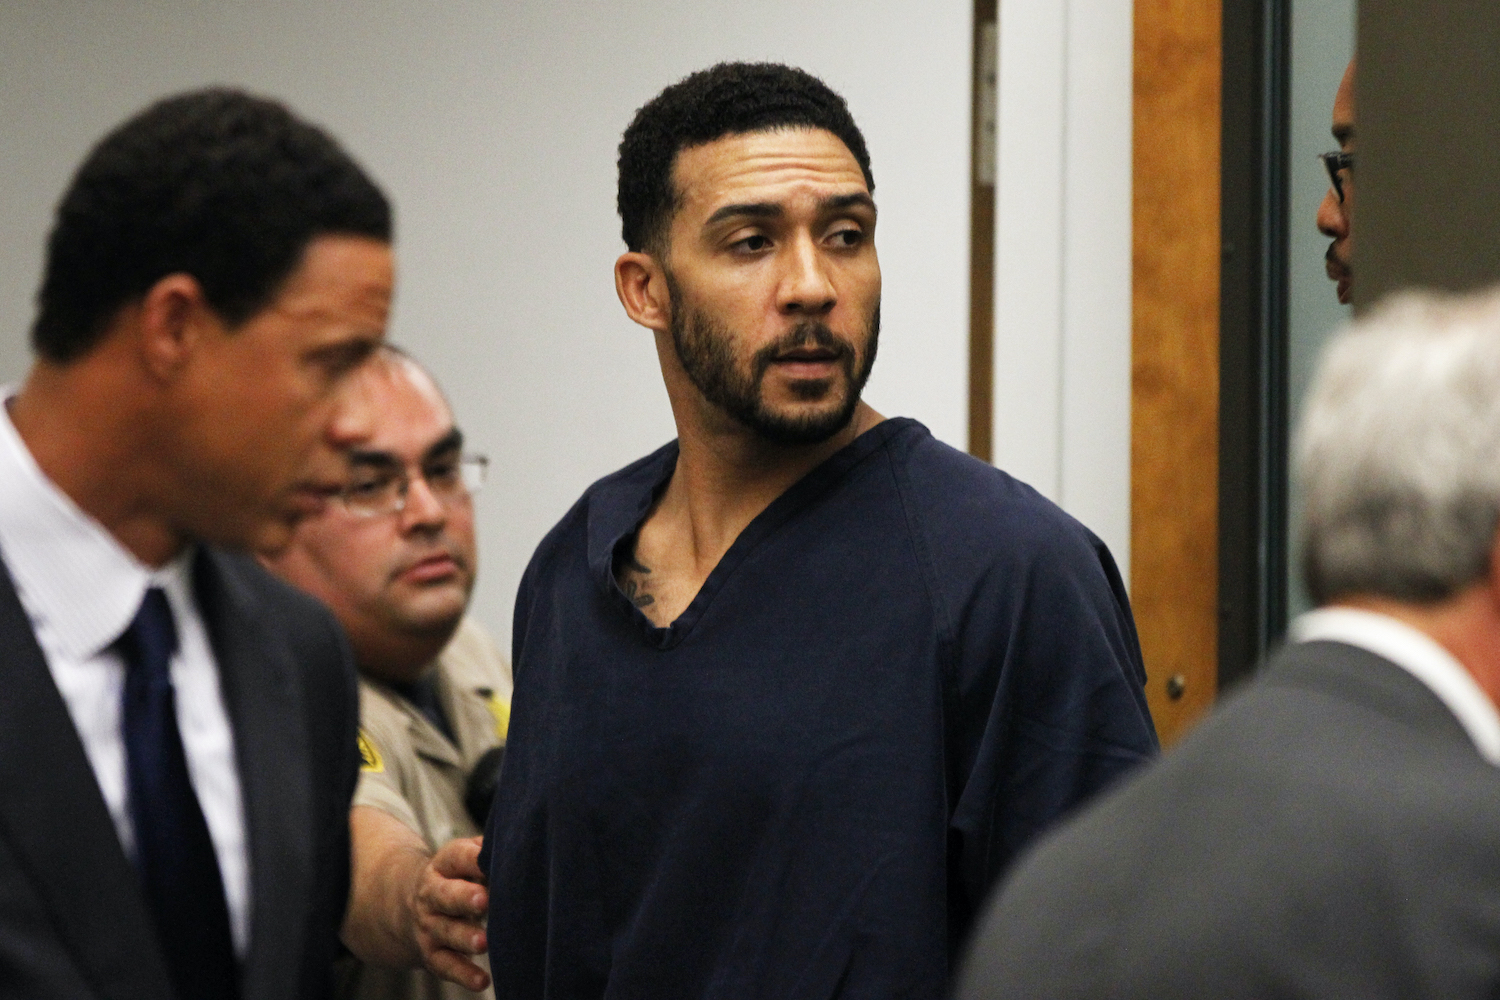 Ex-NFL player Kellen Winslow II gets 14 years in prison for rape and assault